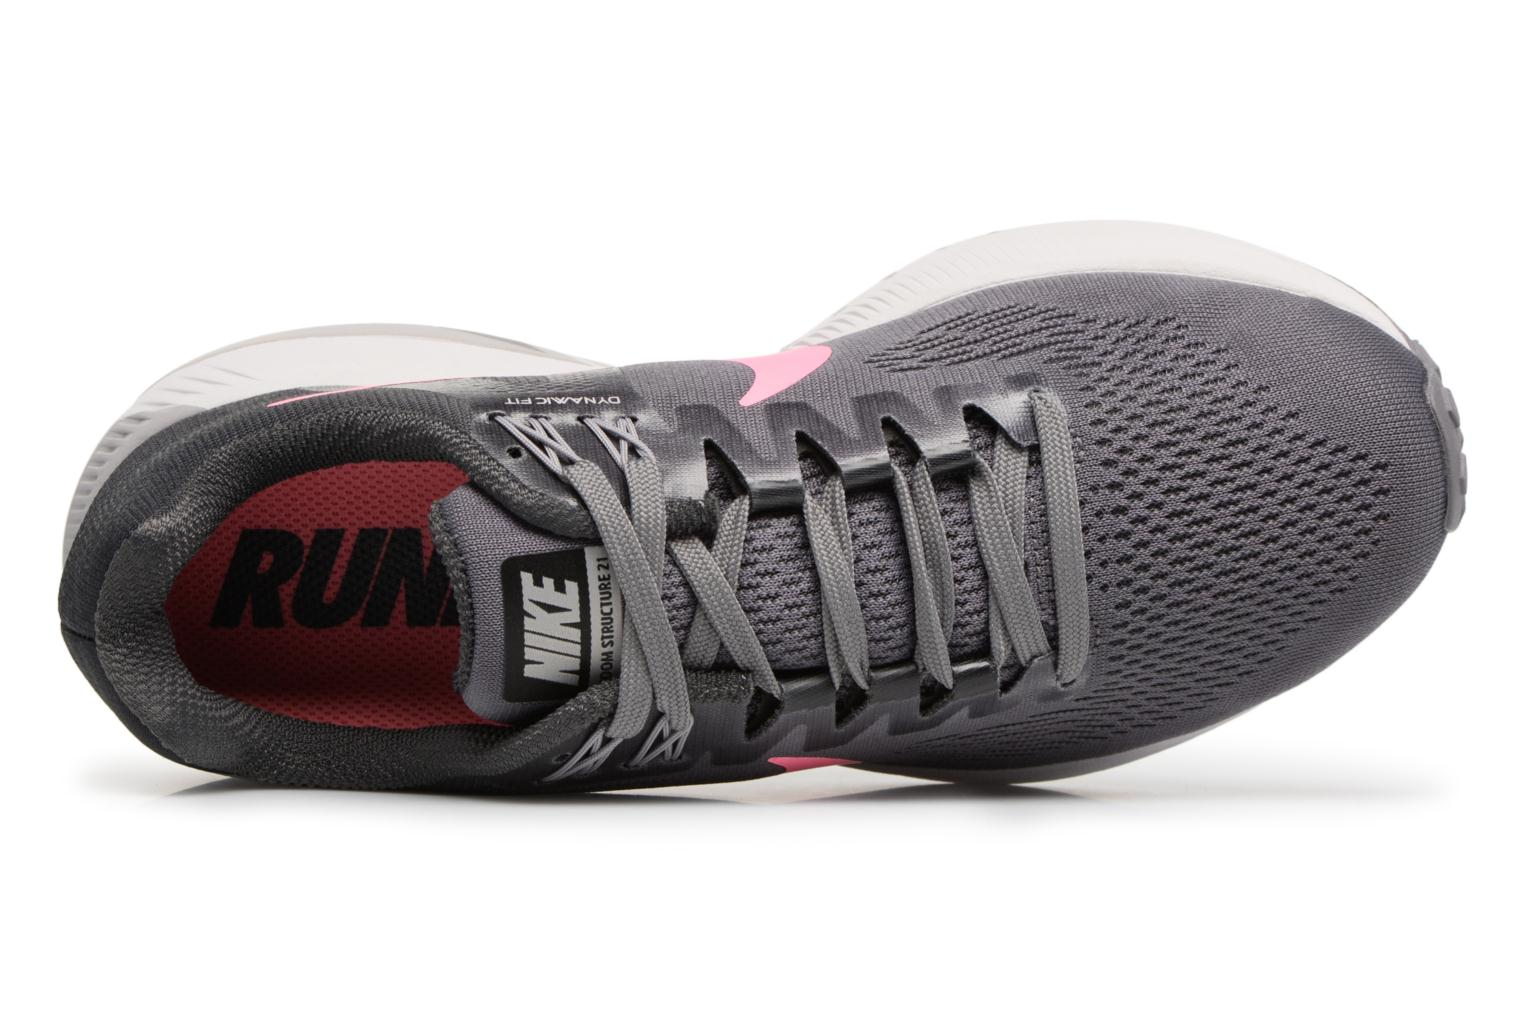 W Nike Air Zoom Structure 21 Gunsmoke/Sunset Pulse-Anthracite